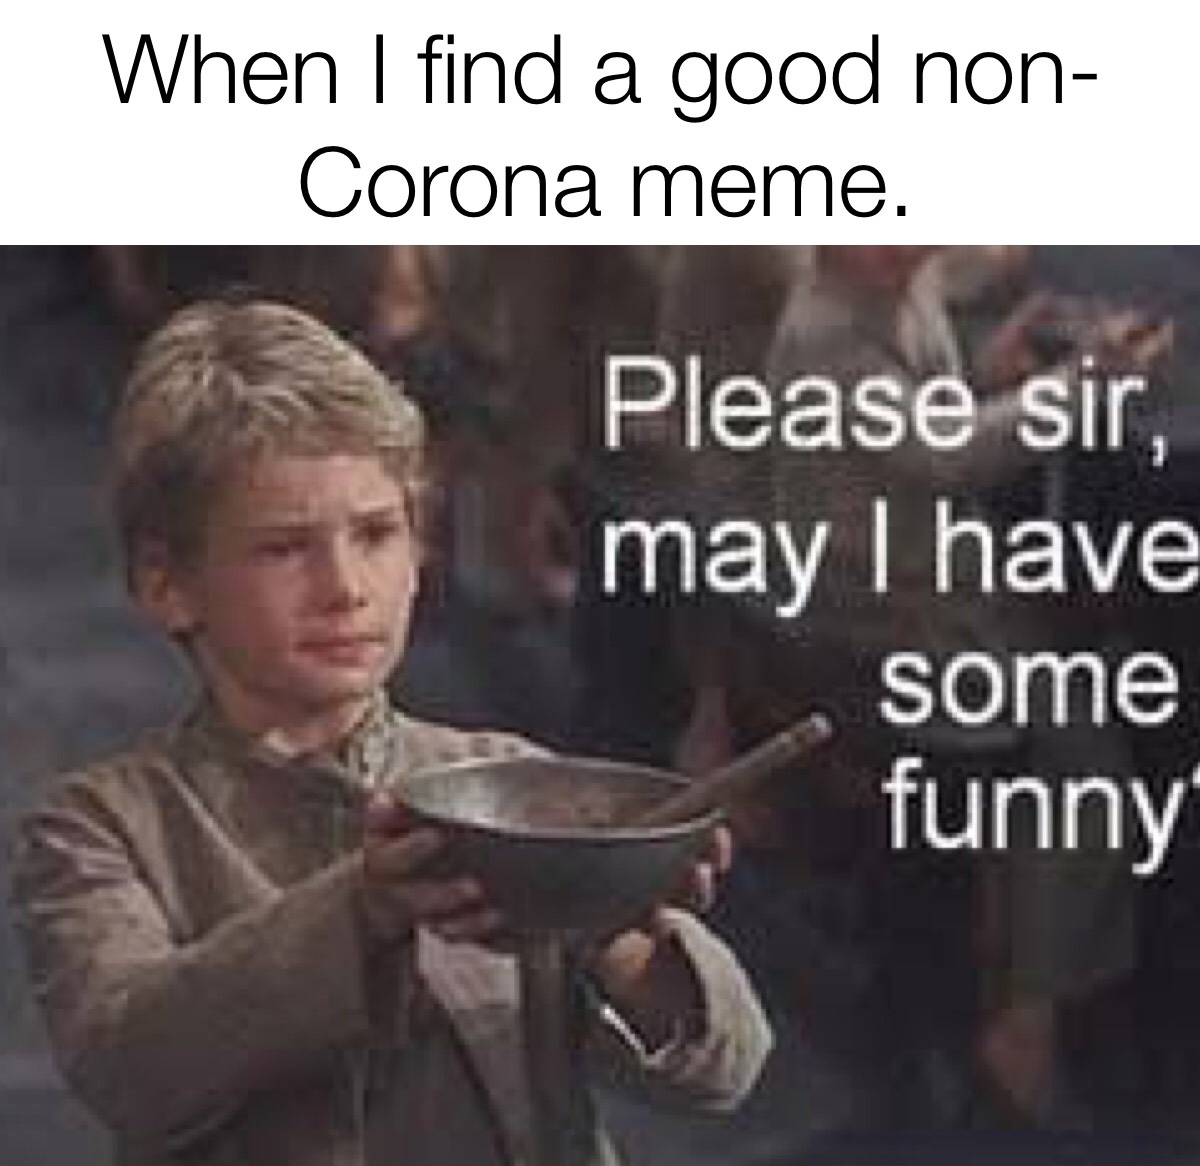 Please sirs, let's have some more... - meme